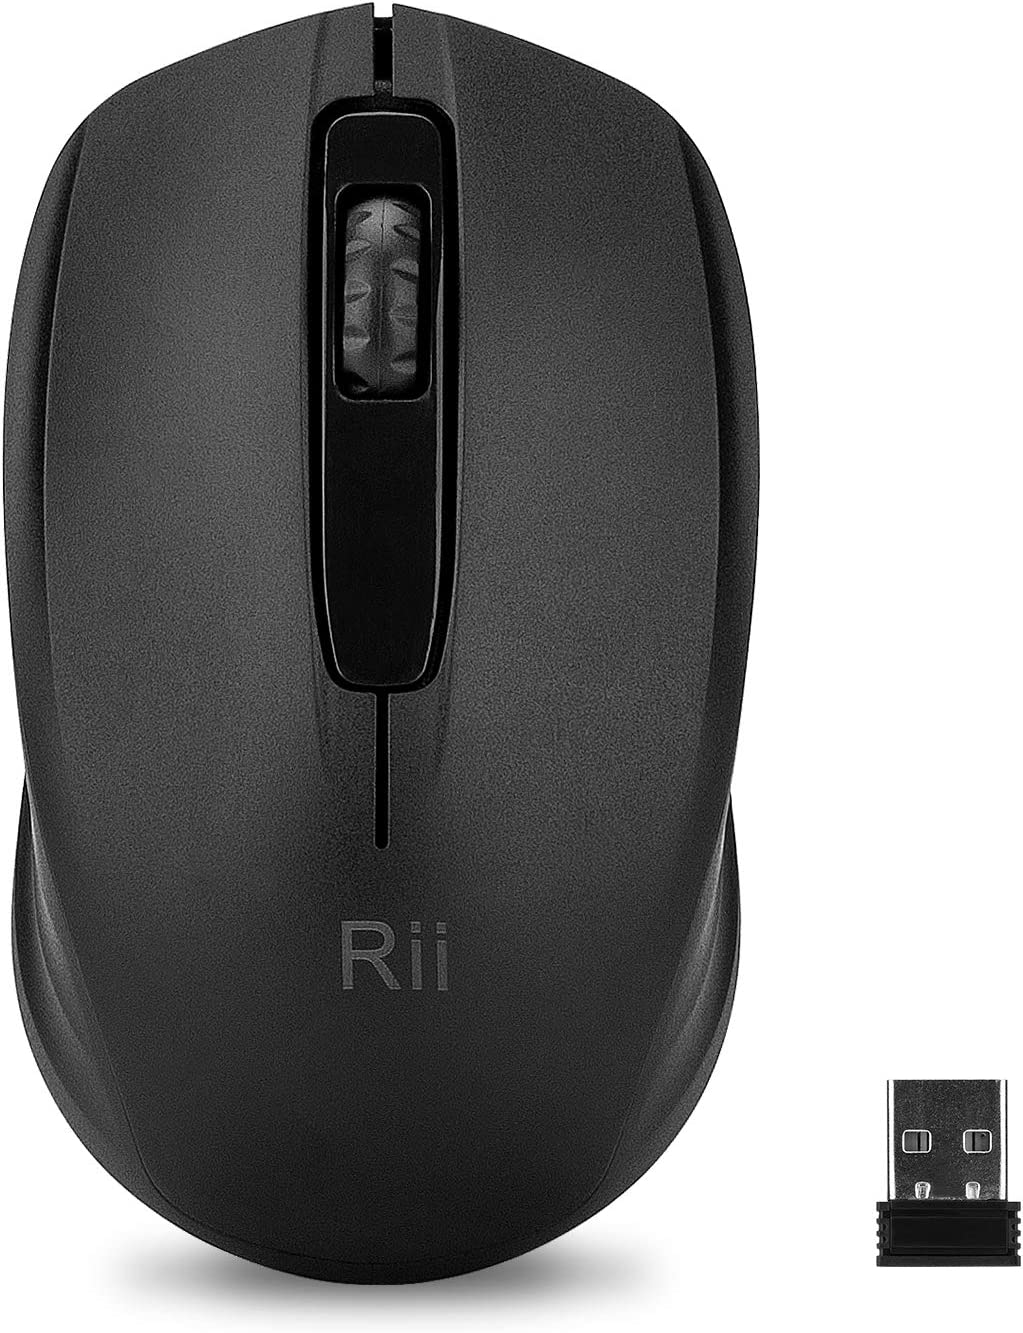 Rii Wireless Mouse 3 Adjustable DPI for PC, Laptop, Windows,Office Included Wireless USB dongle (Black)